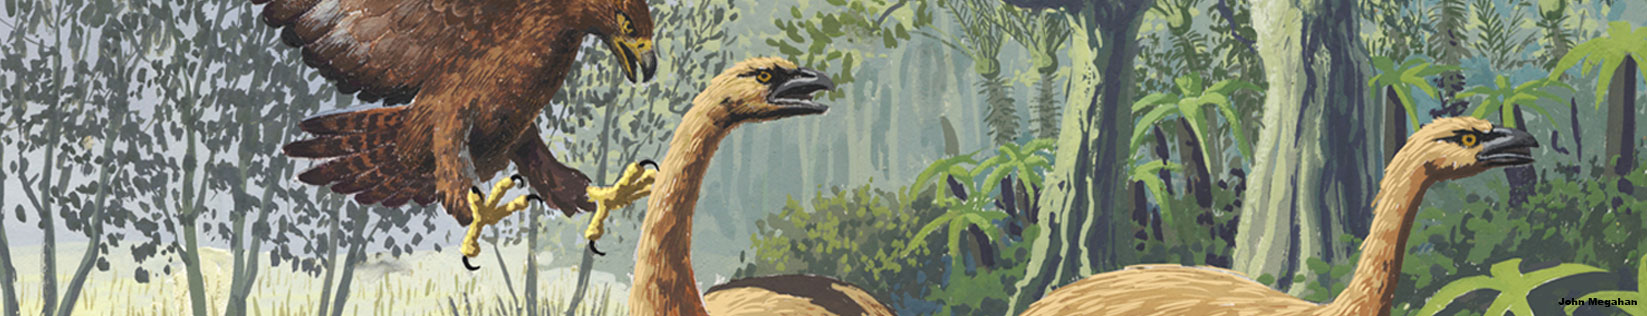 Illustration of a Haast's Eagle attacking a Moa